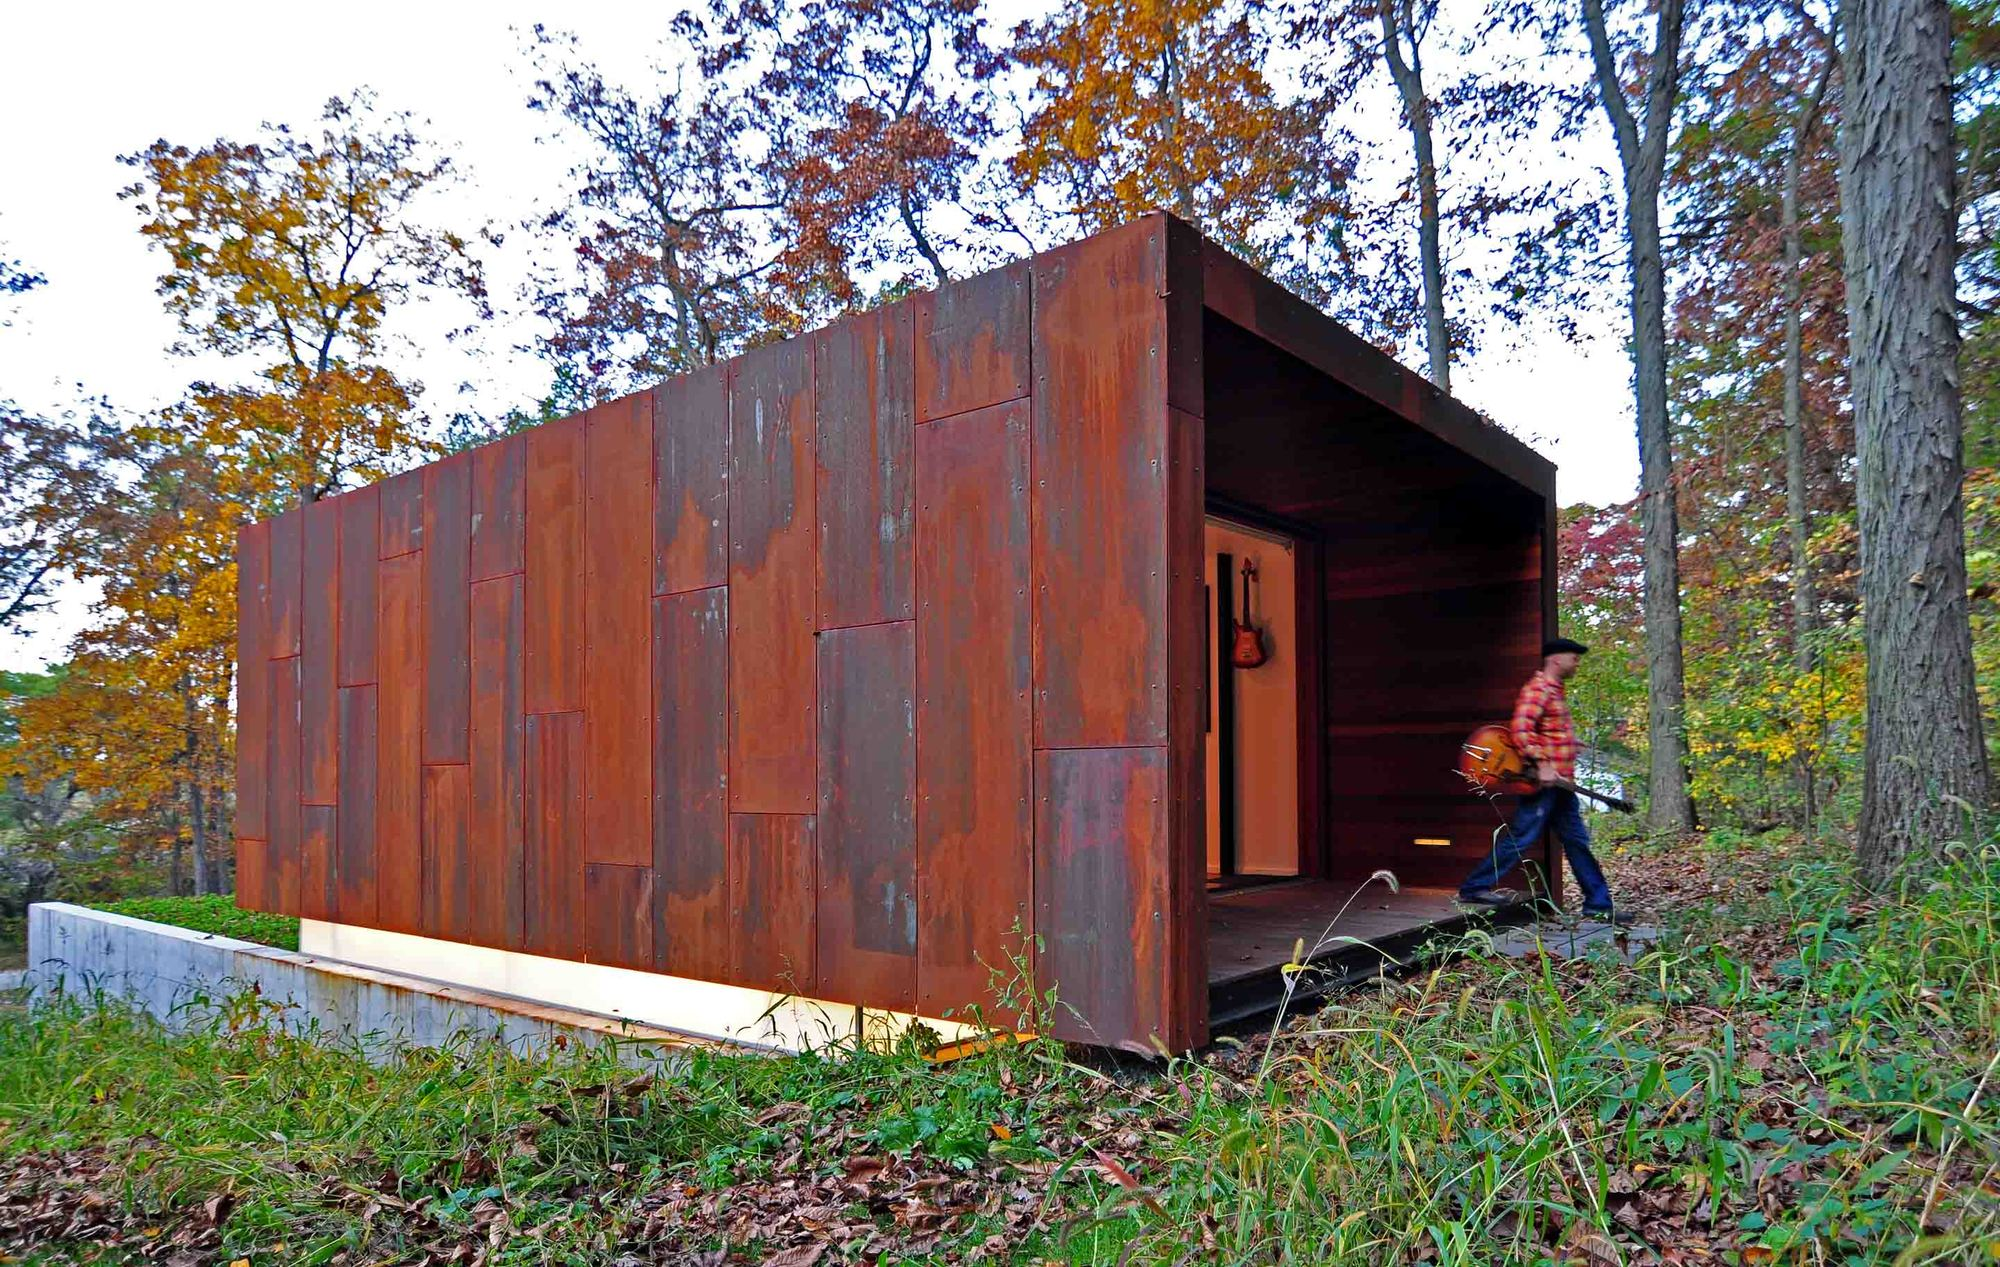 Estúdio para um compositor / Johnsen Schmaling Architects, © John J. Macaulay